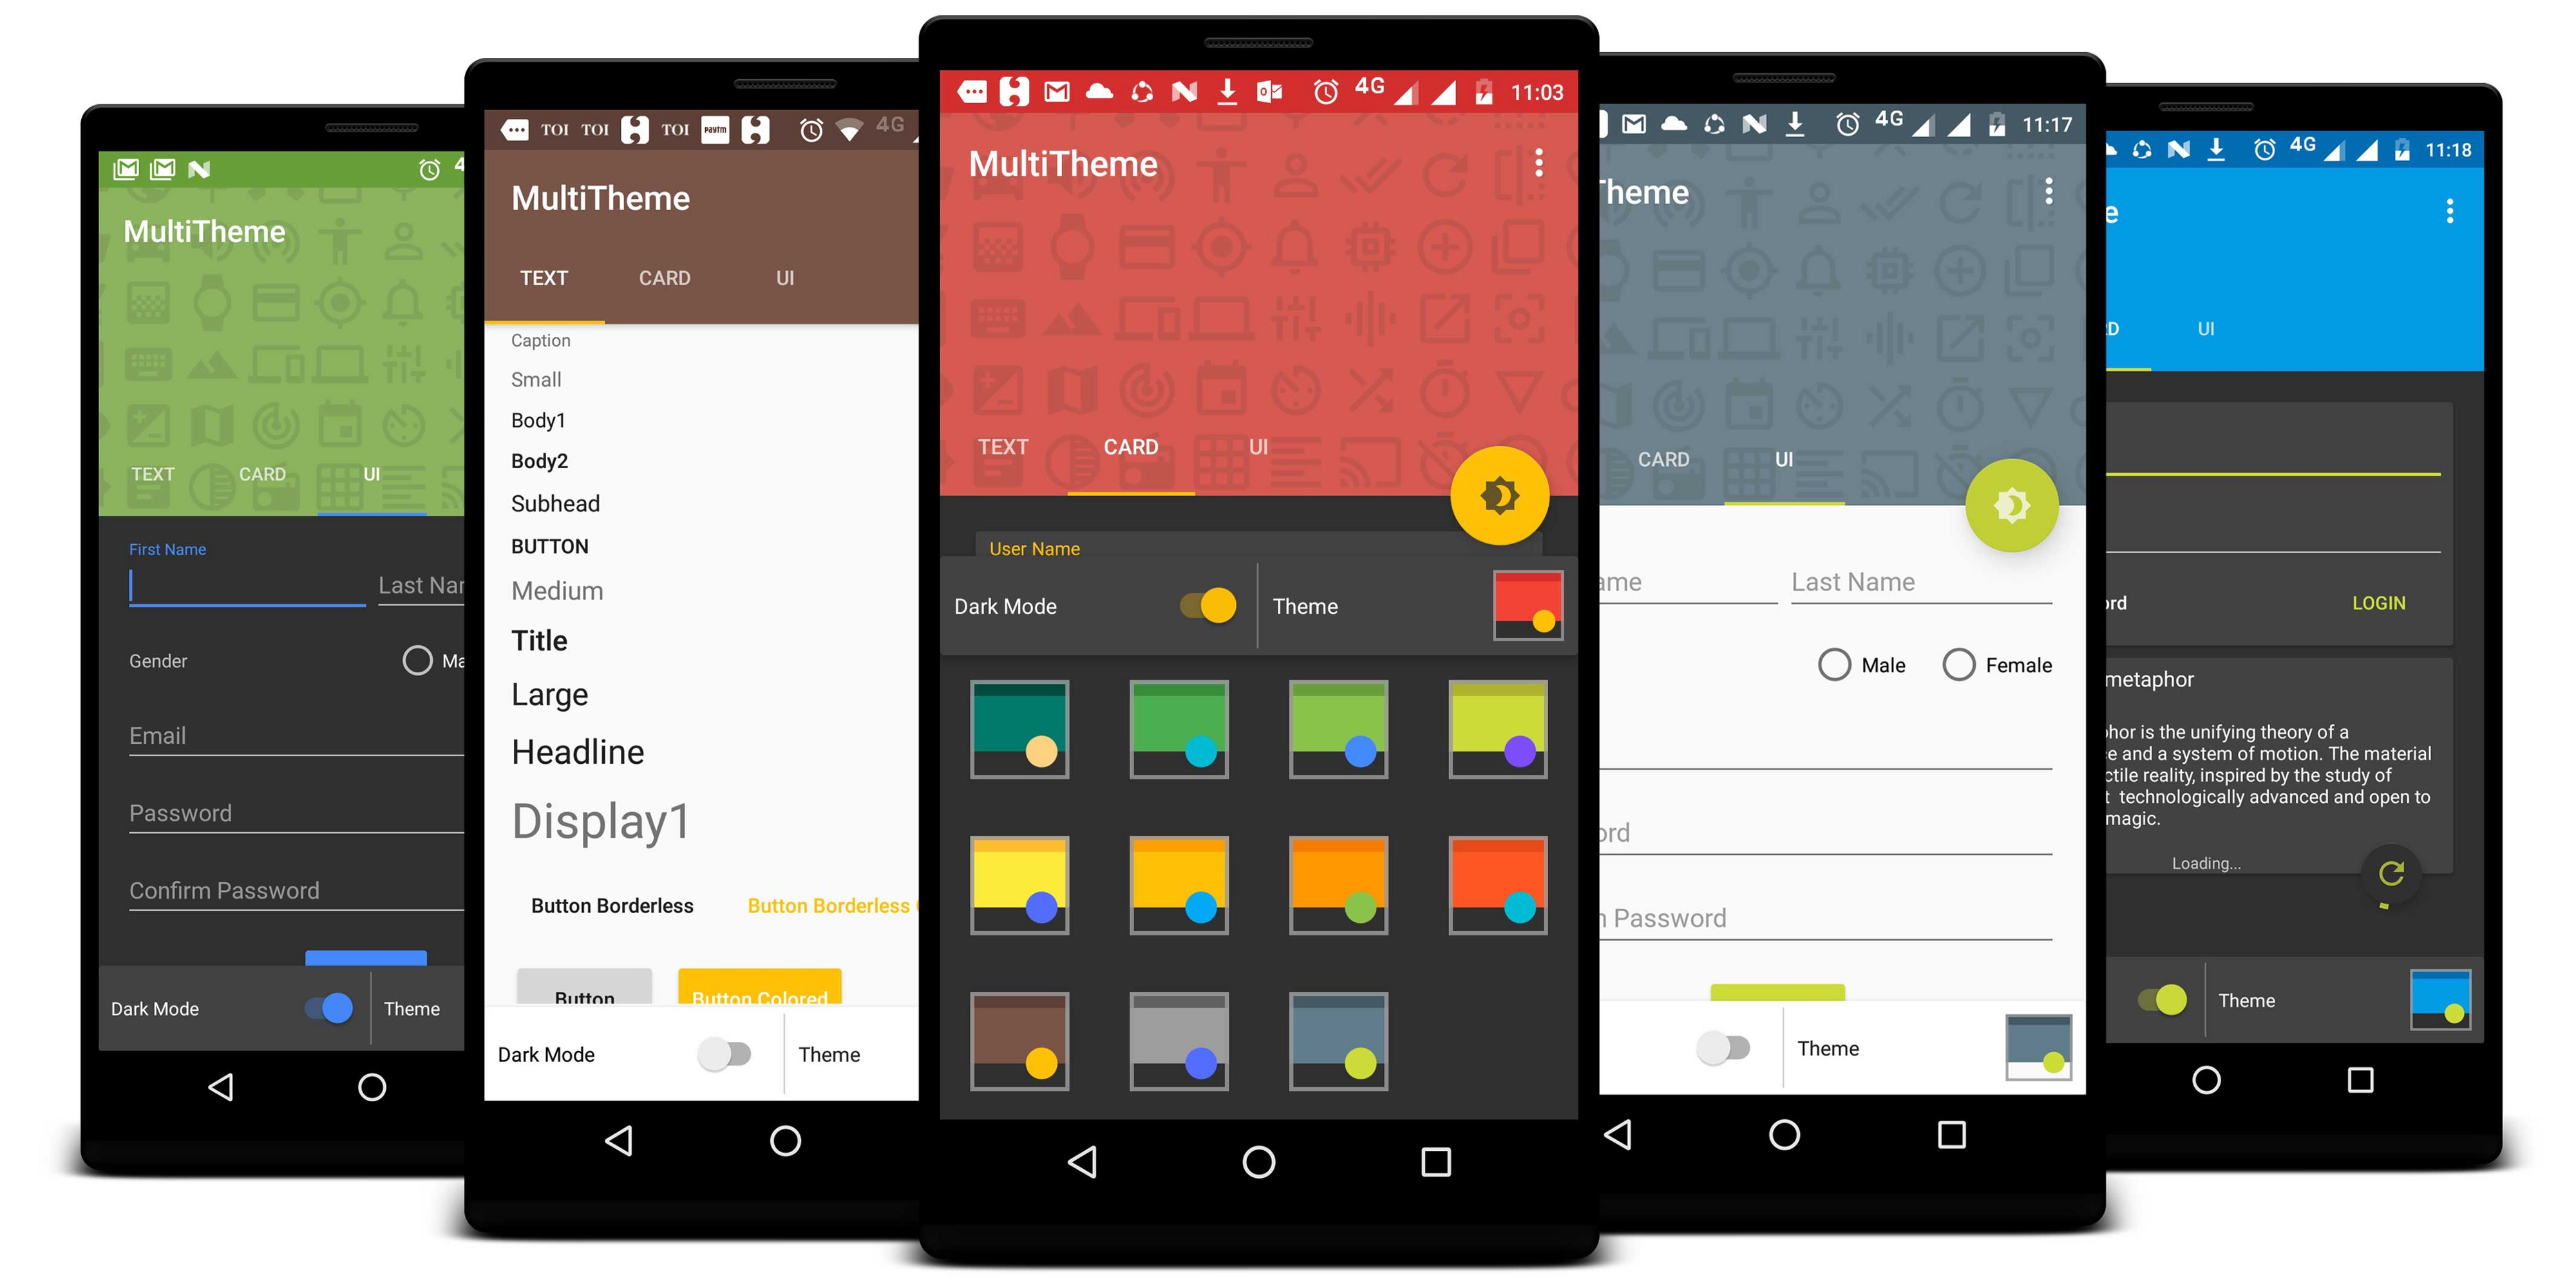 Android Multi Theme, Night Mode and Material Design